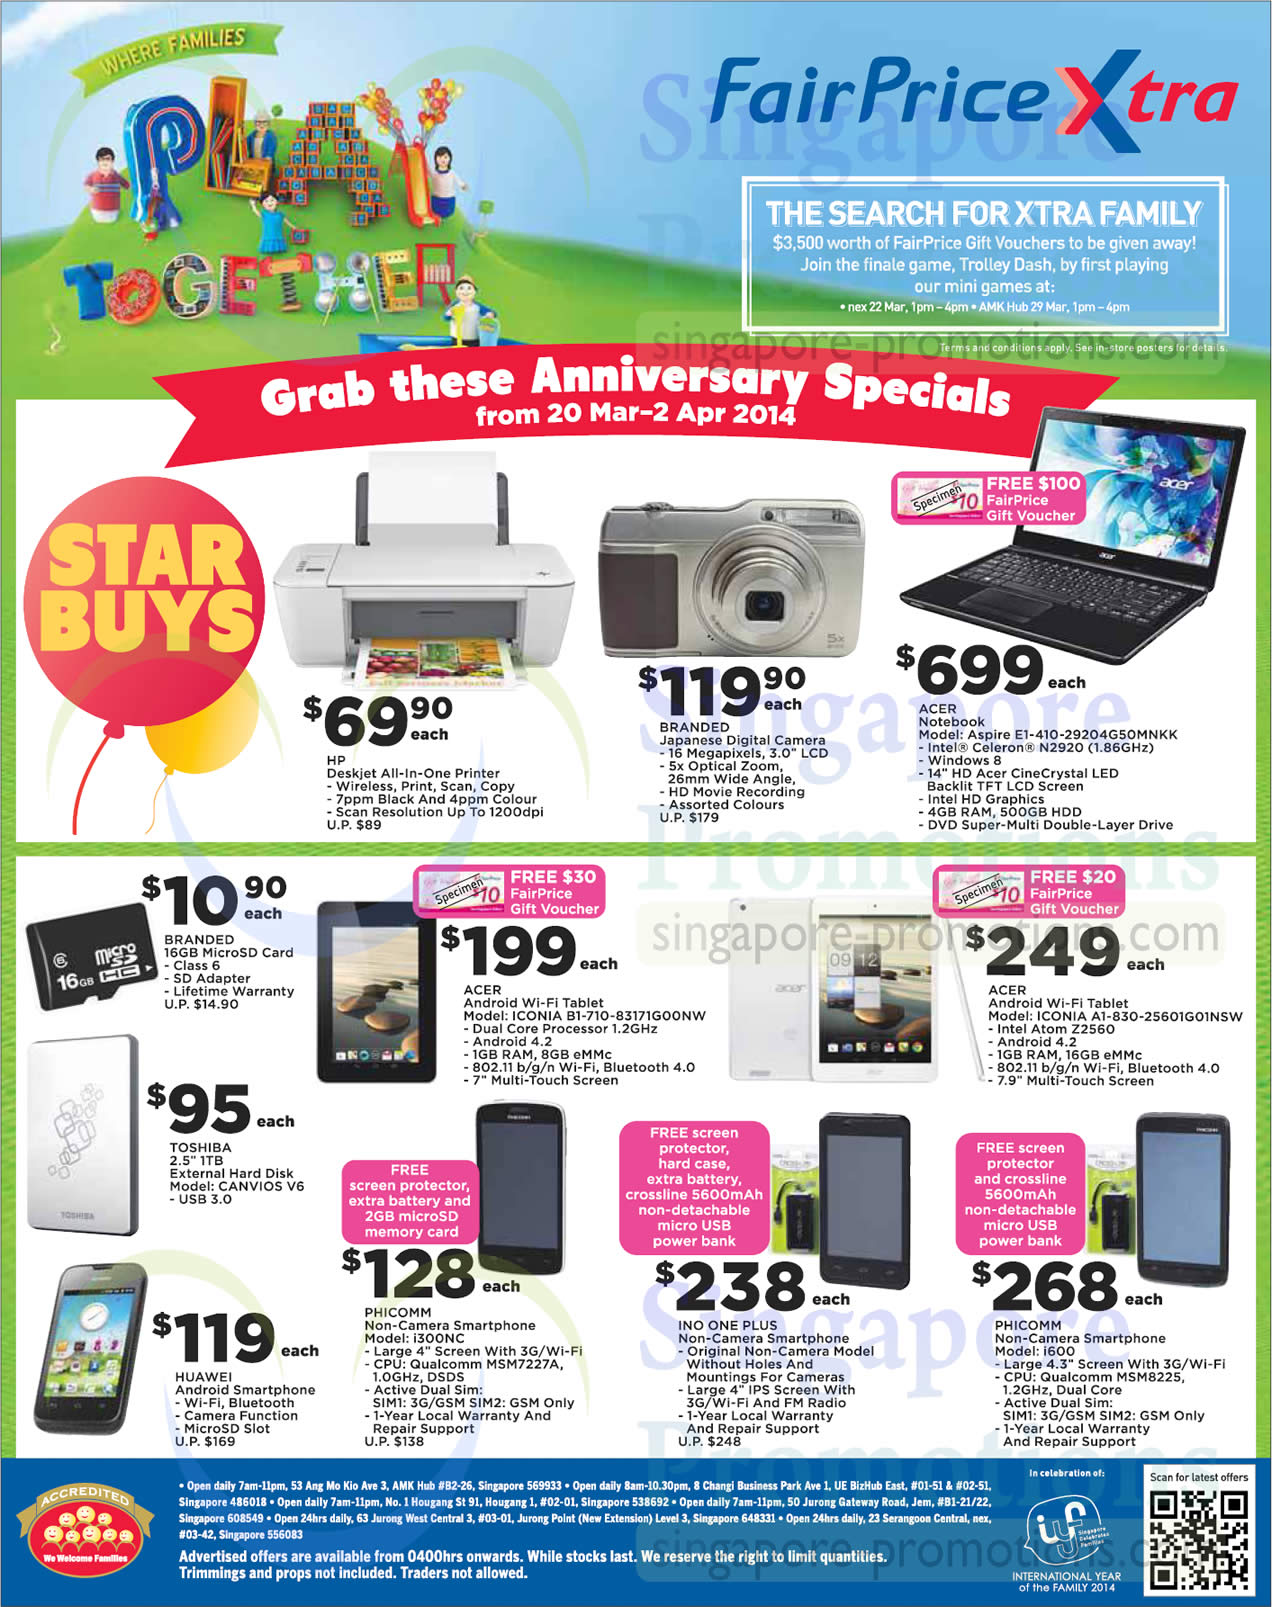 Electronics Mobile Phones, External Hard Disk, Notebook, Tablet, Digital Camera, Acer, HP, Phicomm, Toshiba, Huawei